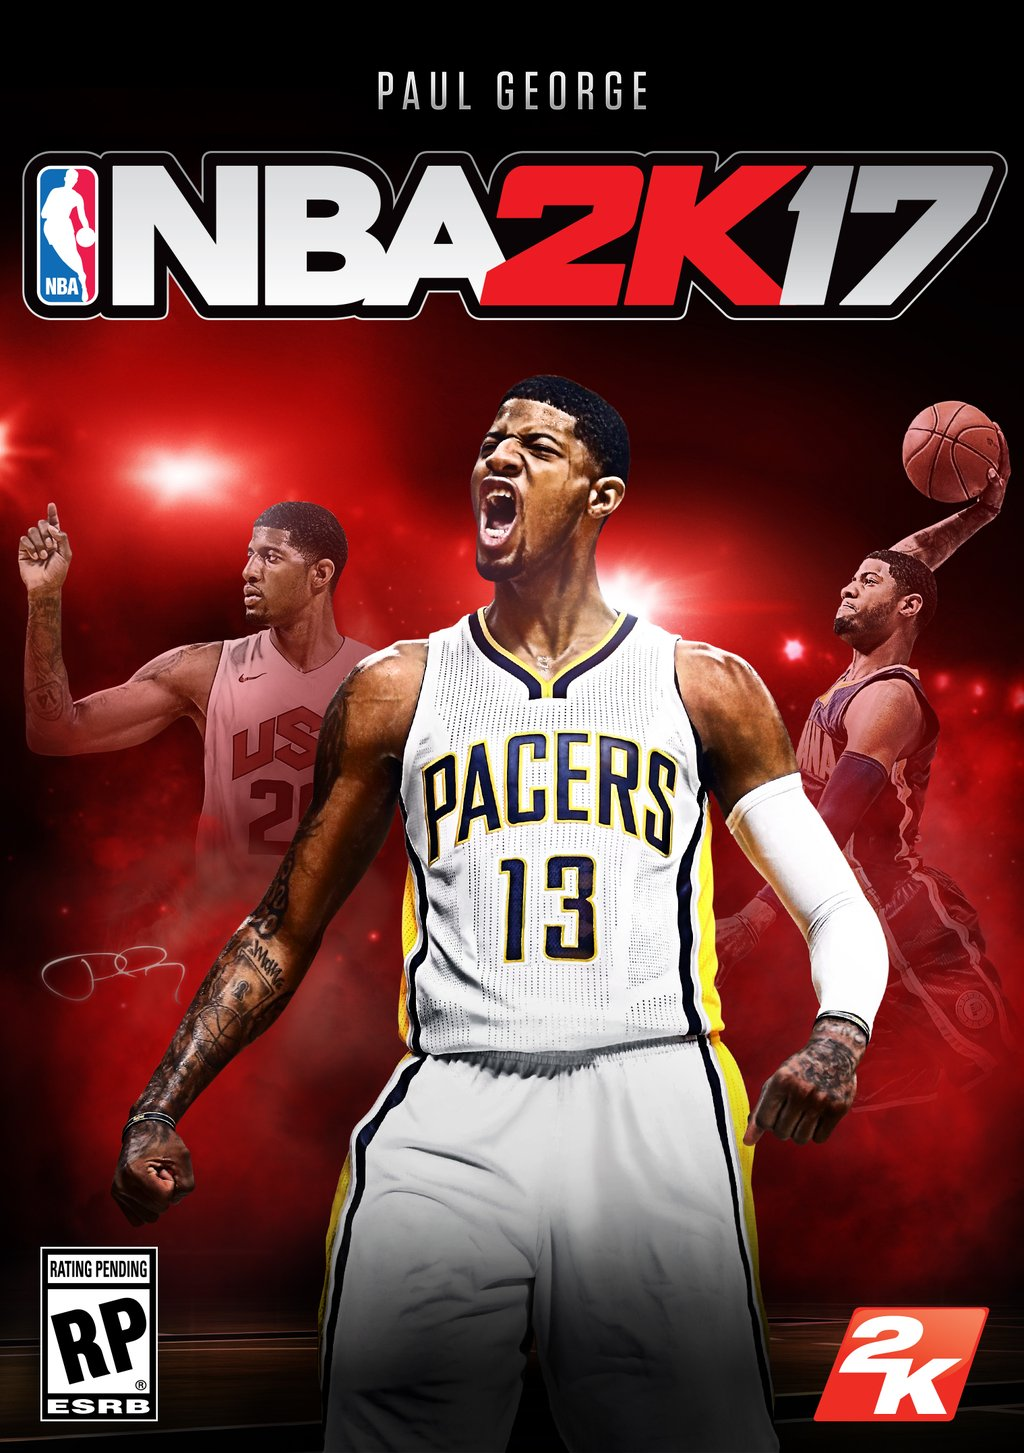 NBA 2K17 cover star is Paul George, game launches in September